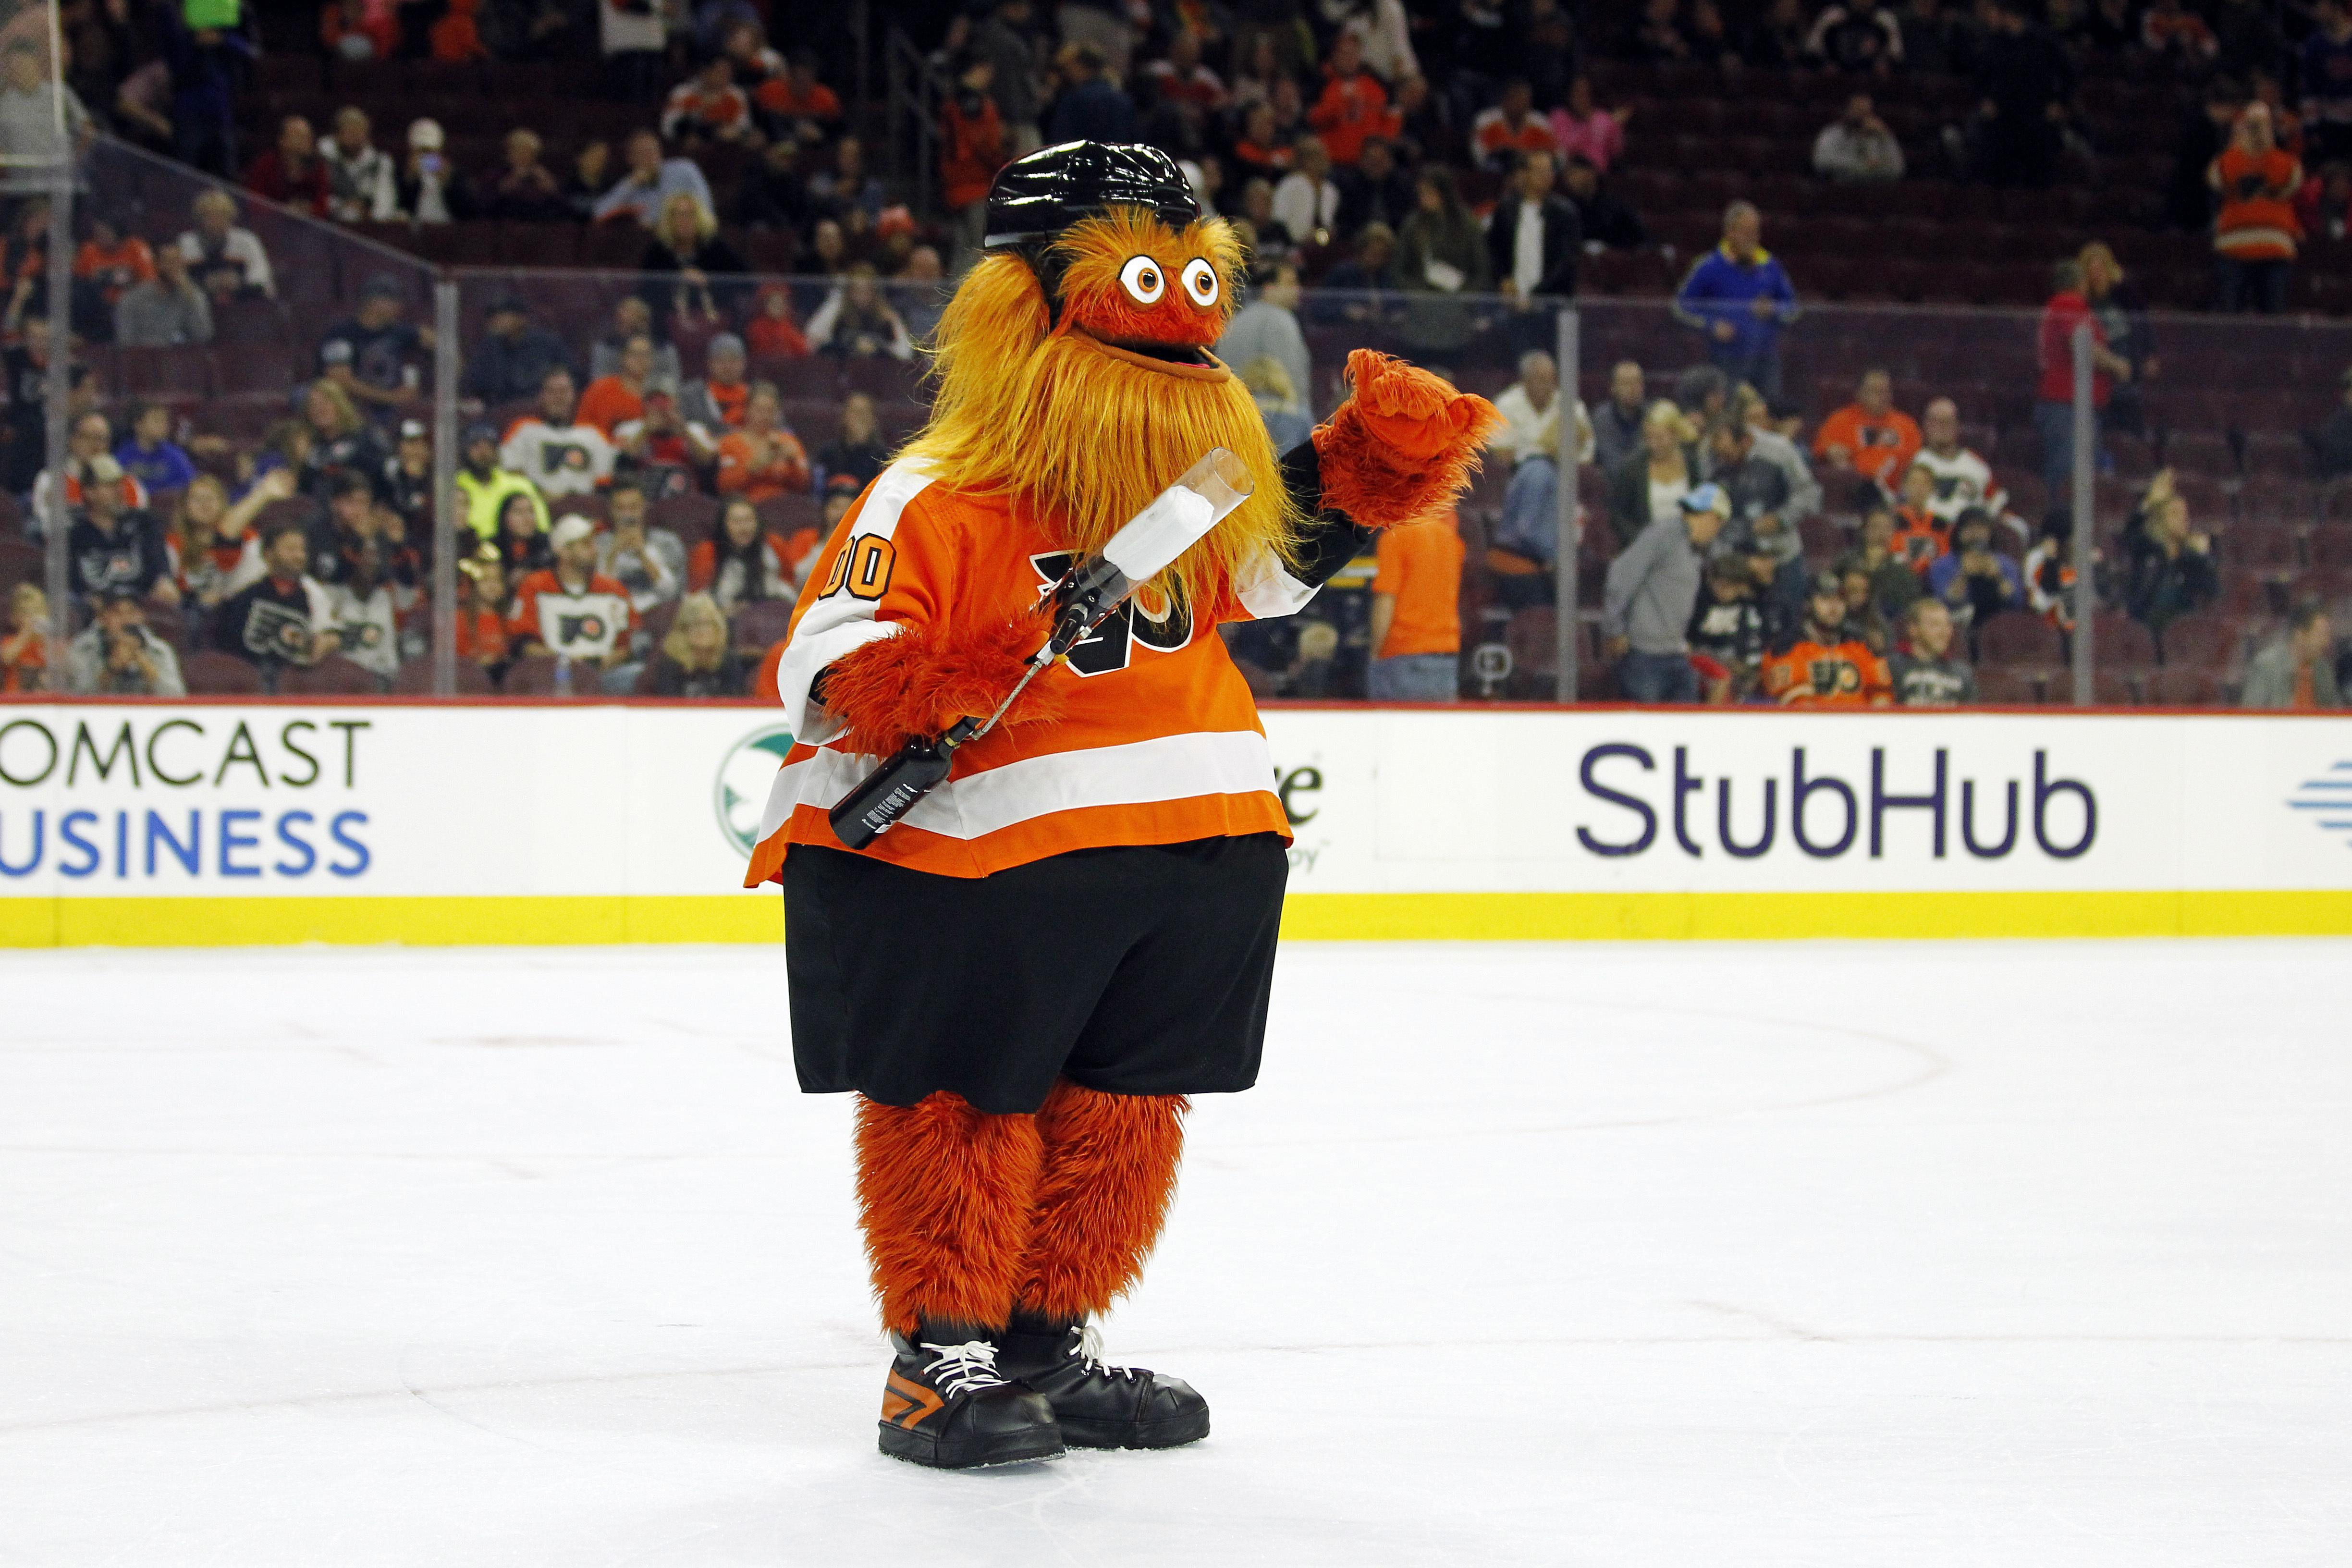 Gritty was only introduced by NHL team the Philadelphia Flyers in September